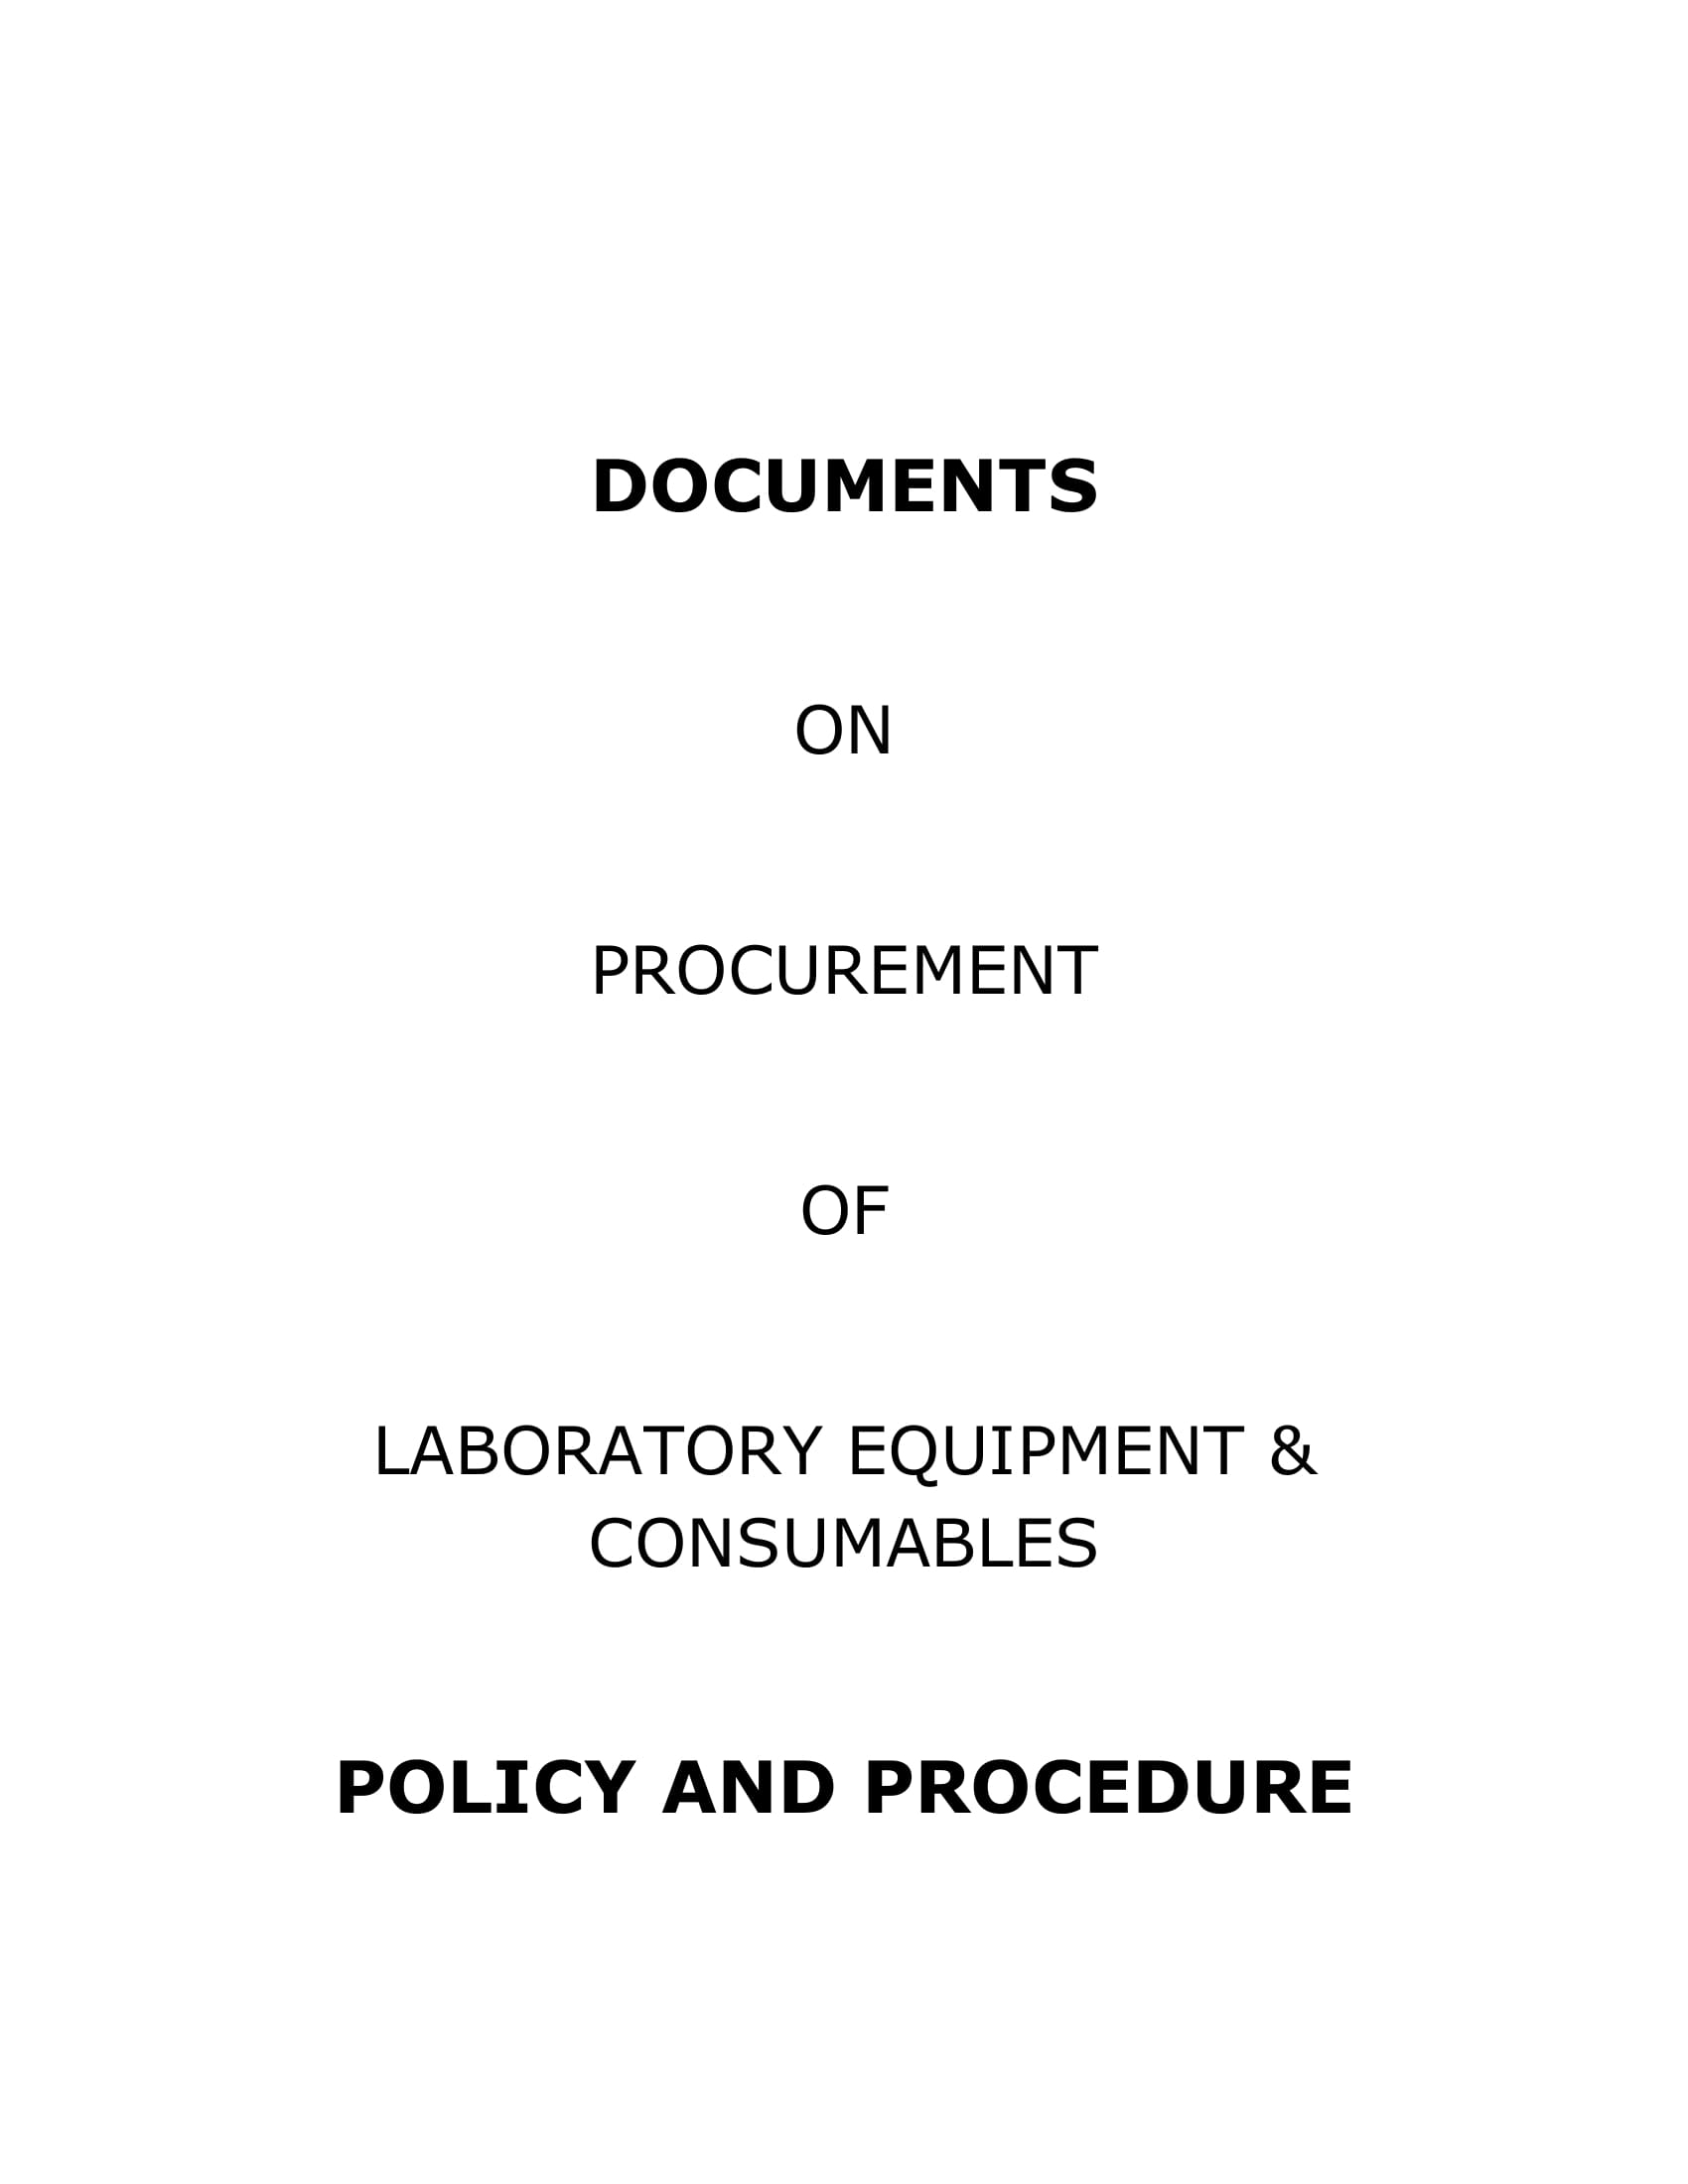 documents on procurement of laboratory equipment and consumables example 01